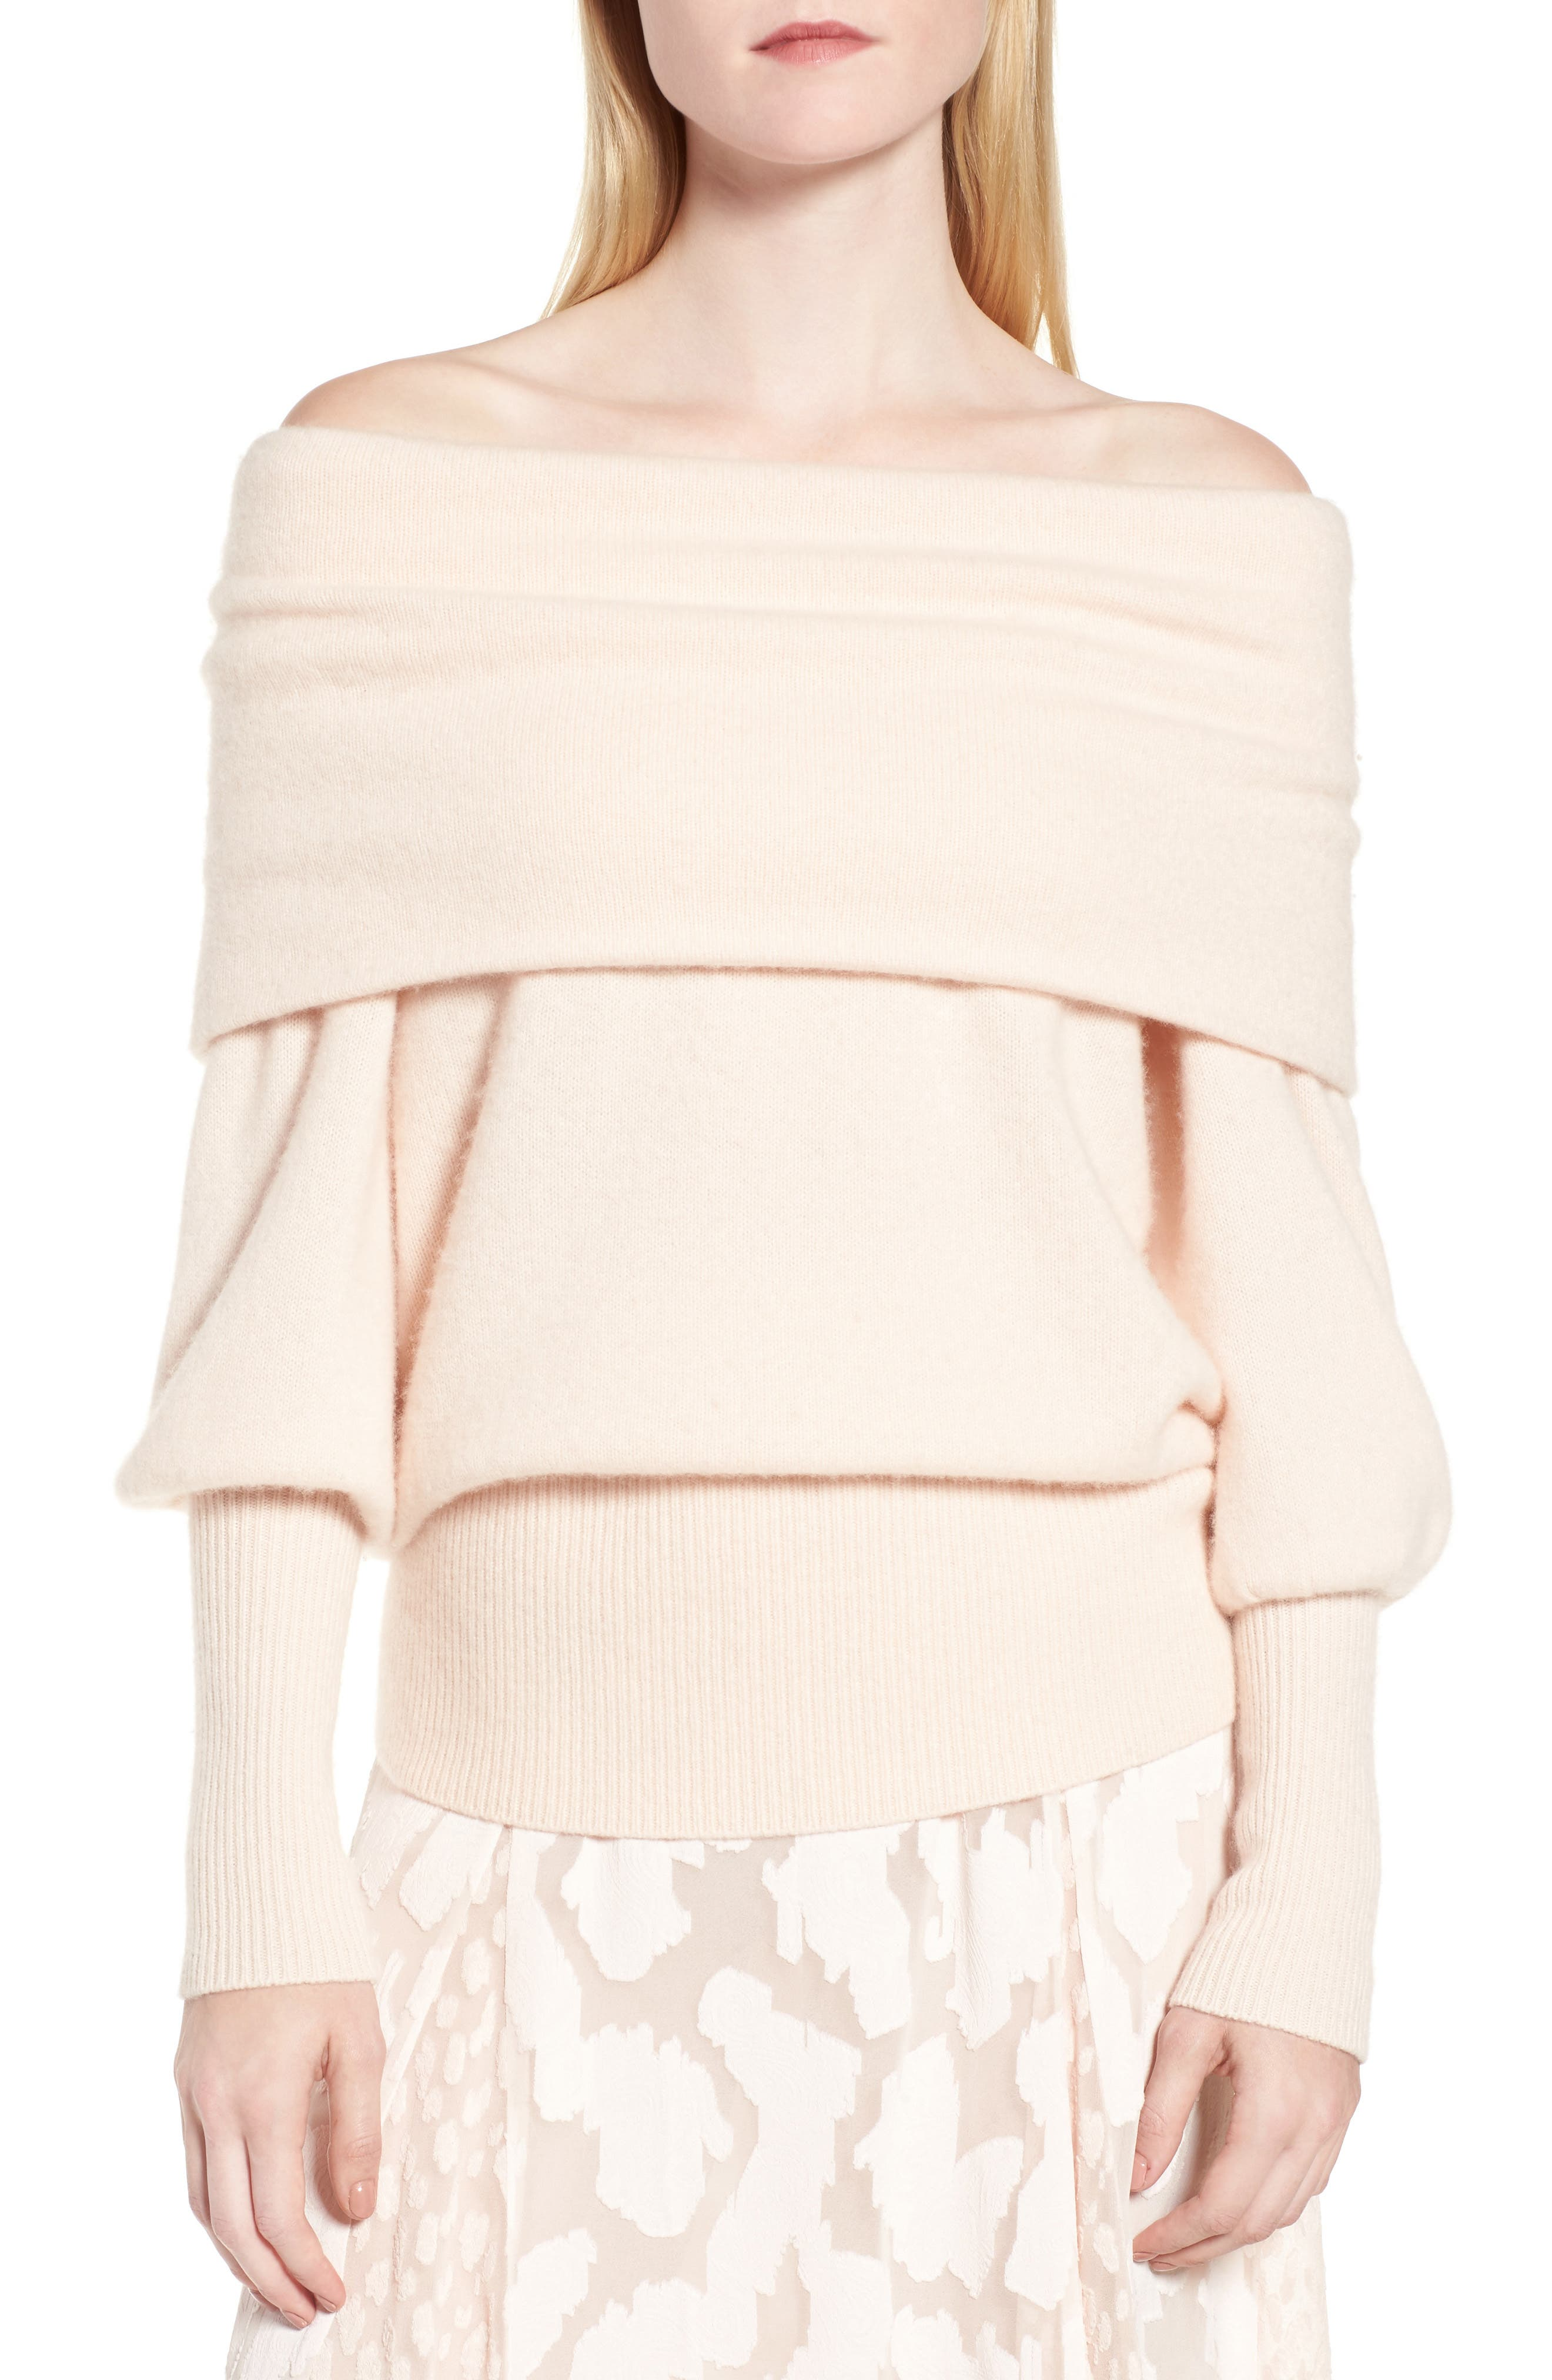 Alternate Image 1 Selected - Lewit Convertible Neck Cashmere Sweater